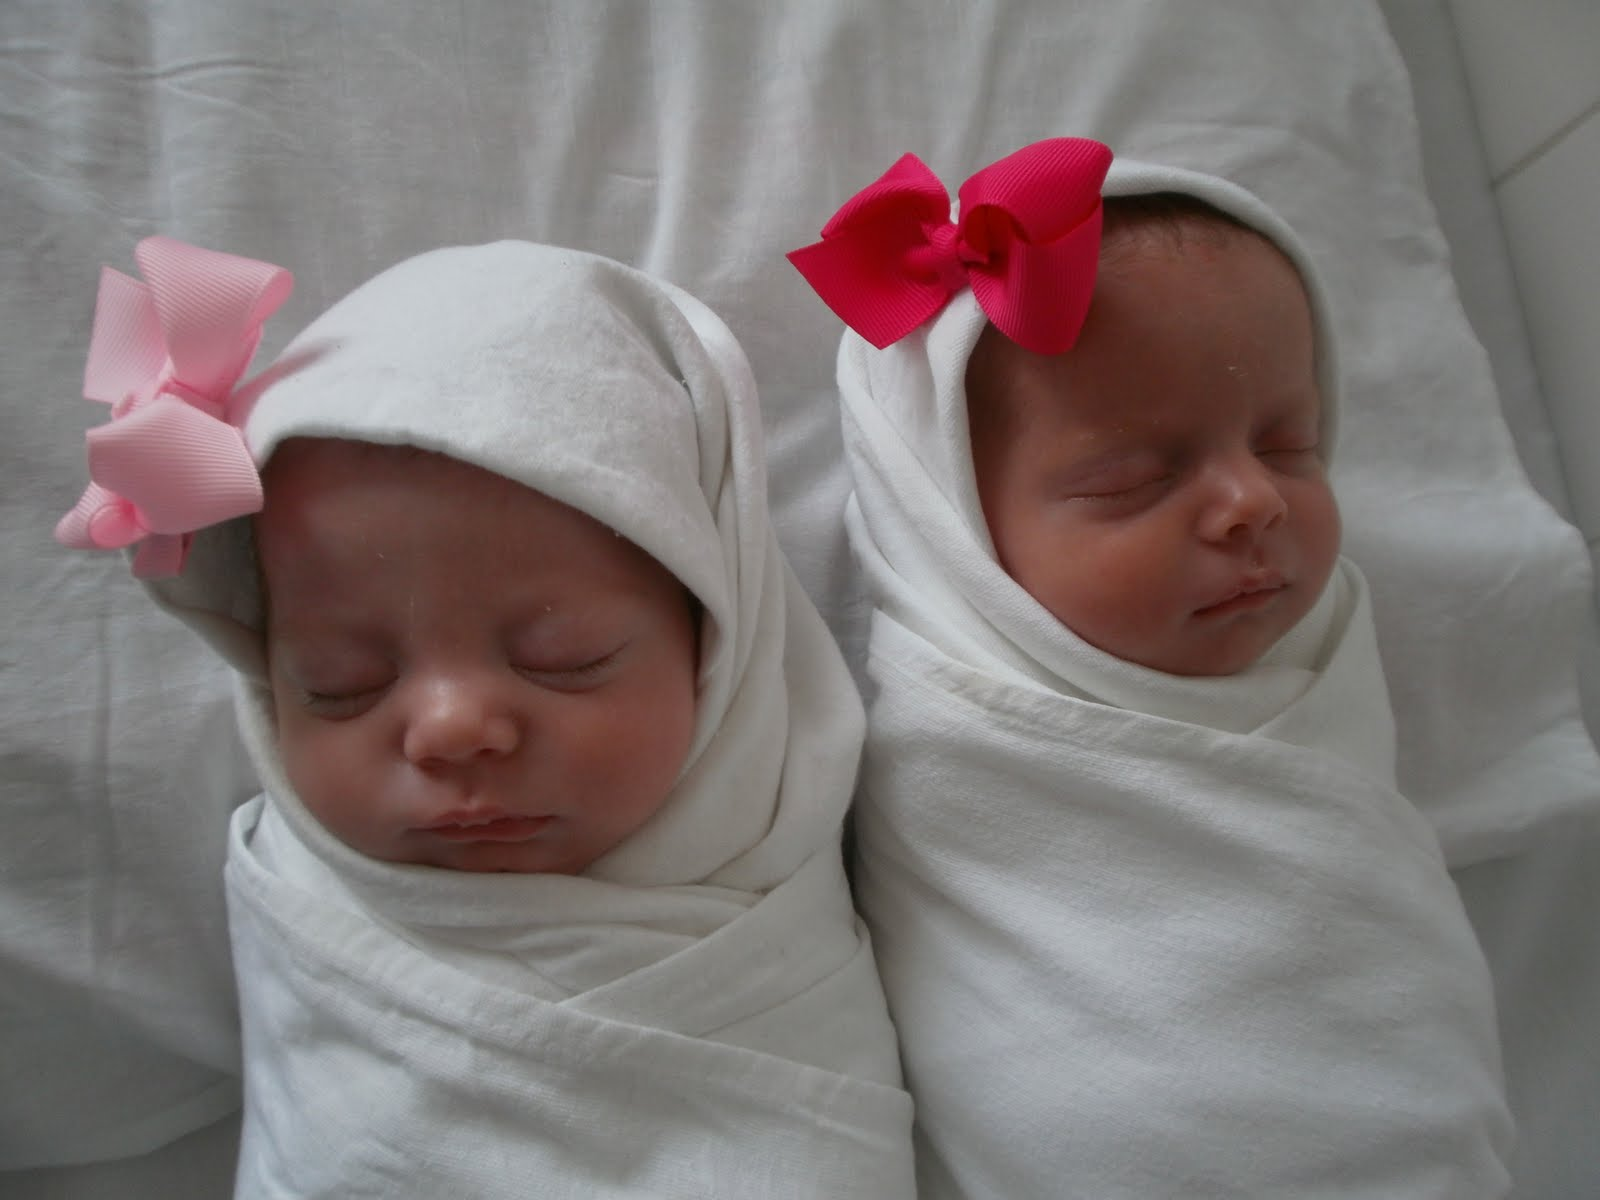 Ana maria and gabriella the twins